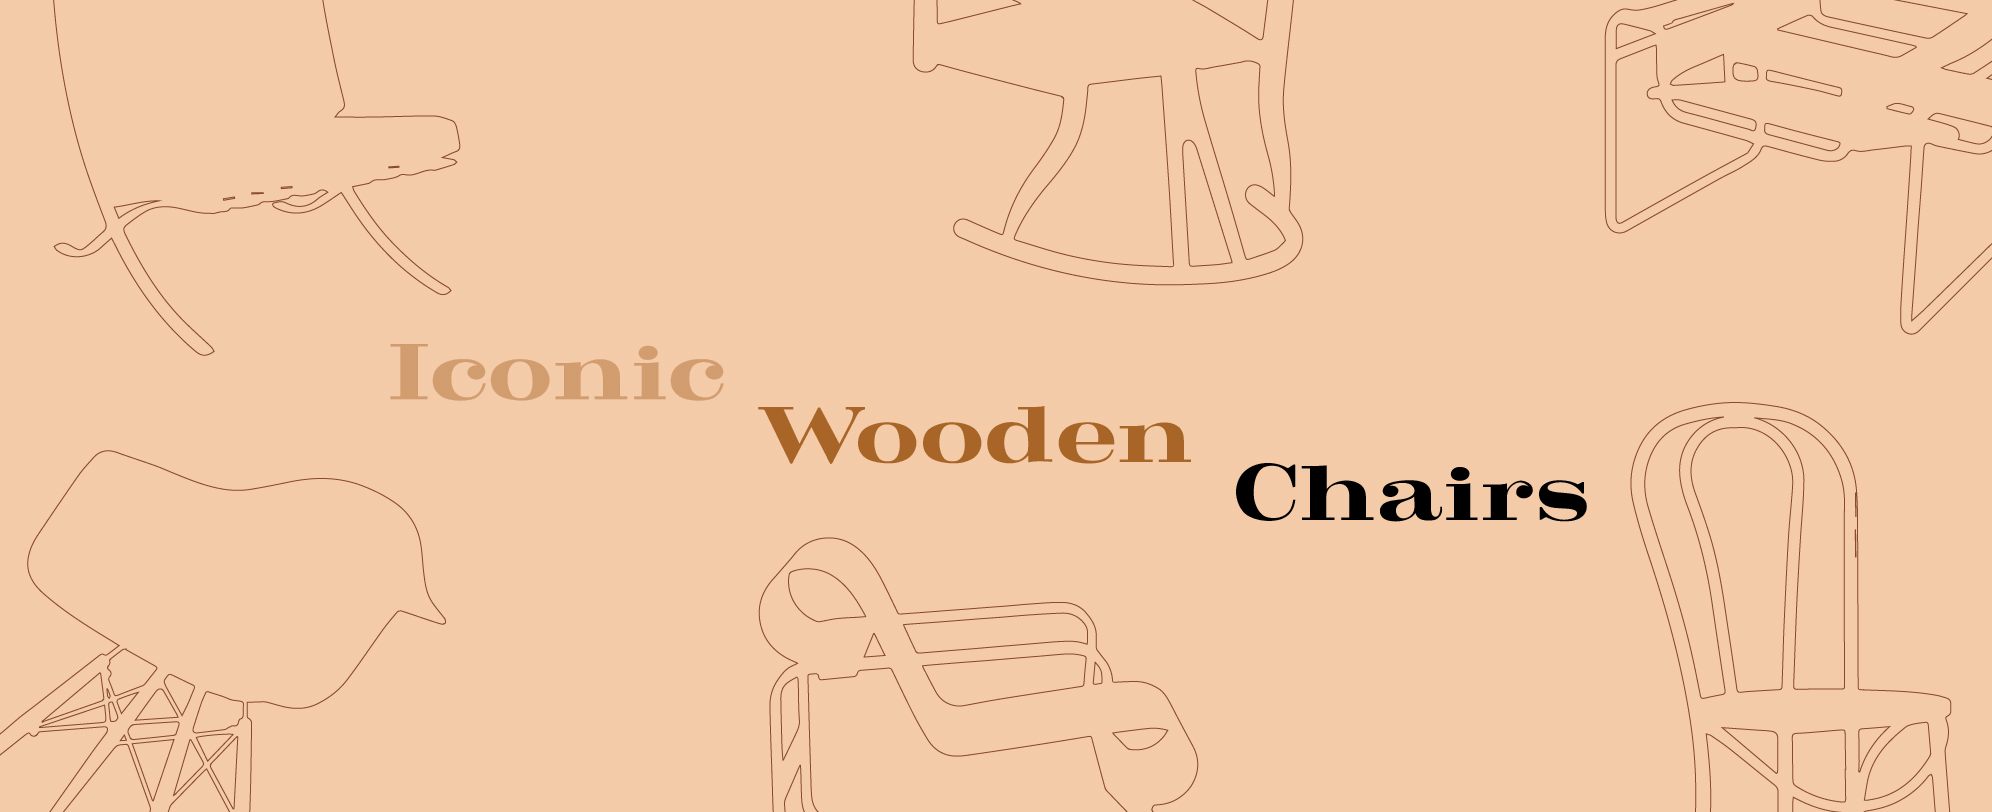 Iconic Wooden Chairs